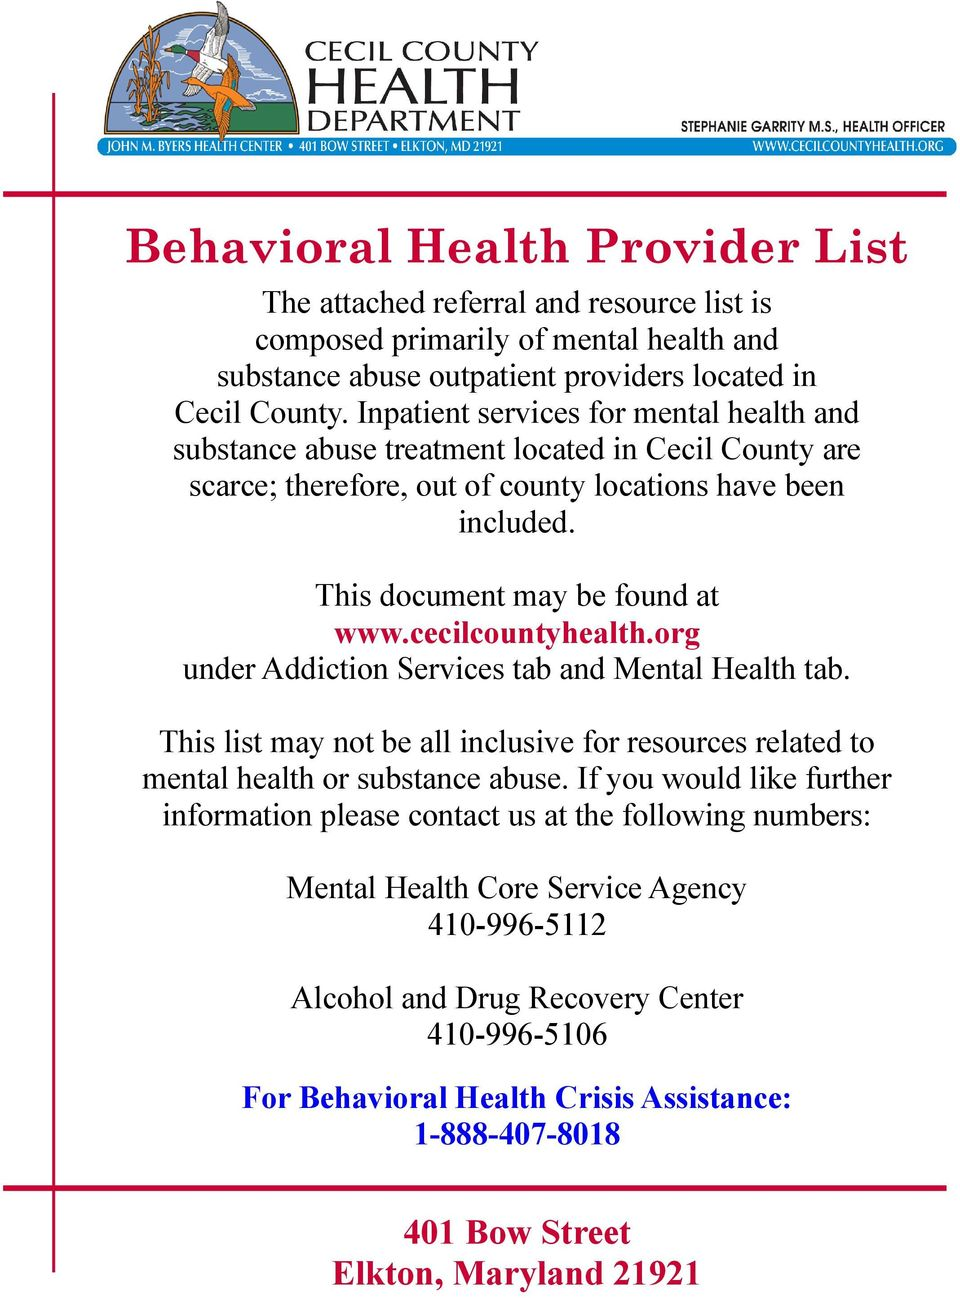 cecilcountyhealth.org under Addiction Services tab and Mental Health tab. This list may not be all inclusive for resources related to mental health or substance abuse.